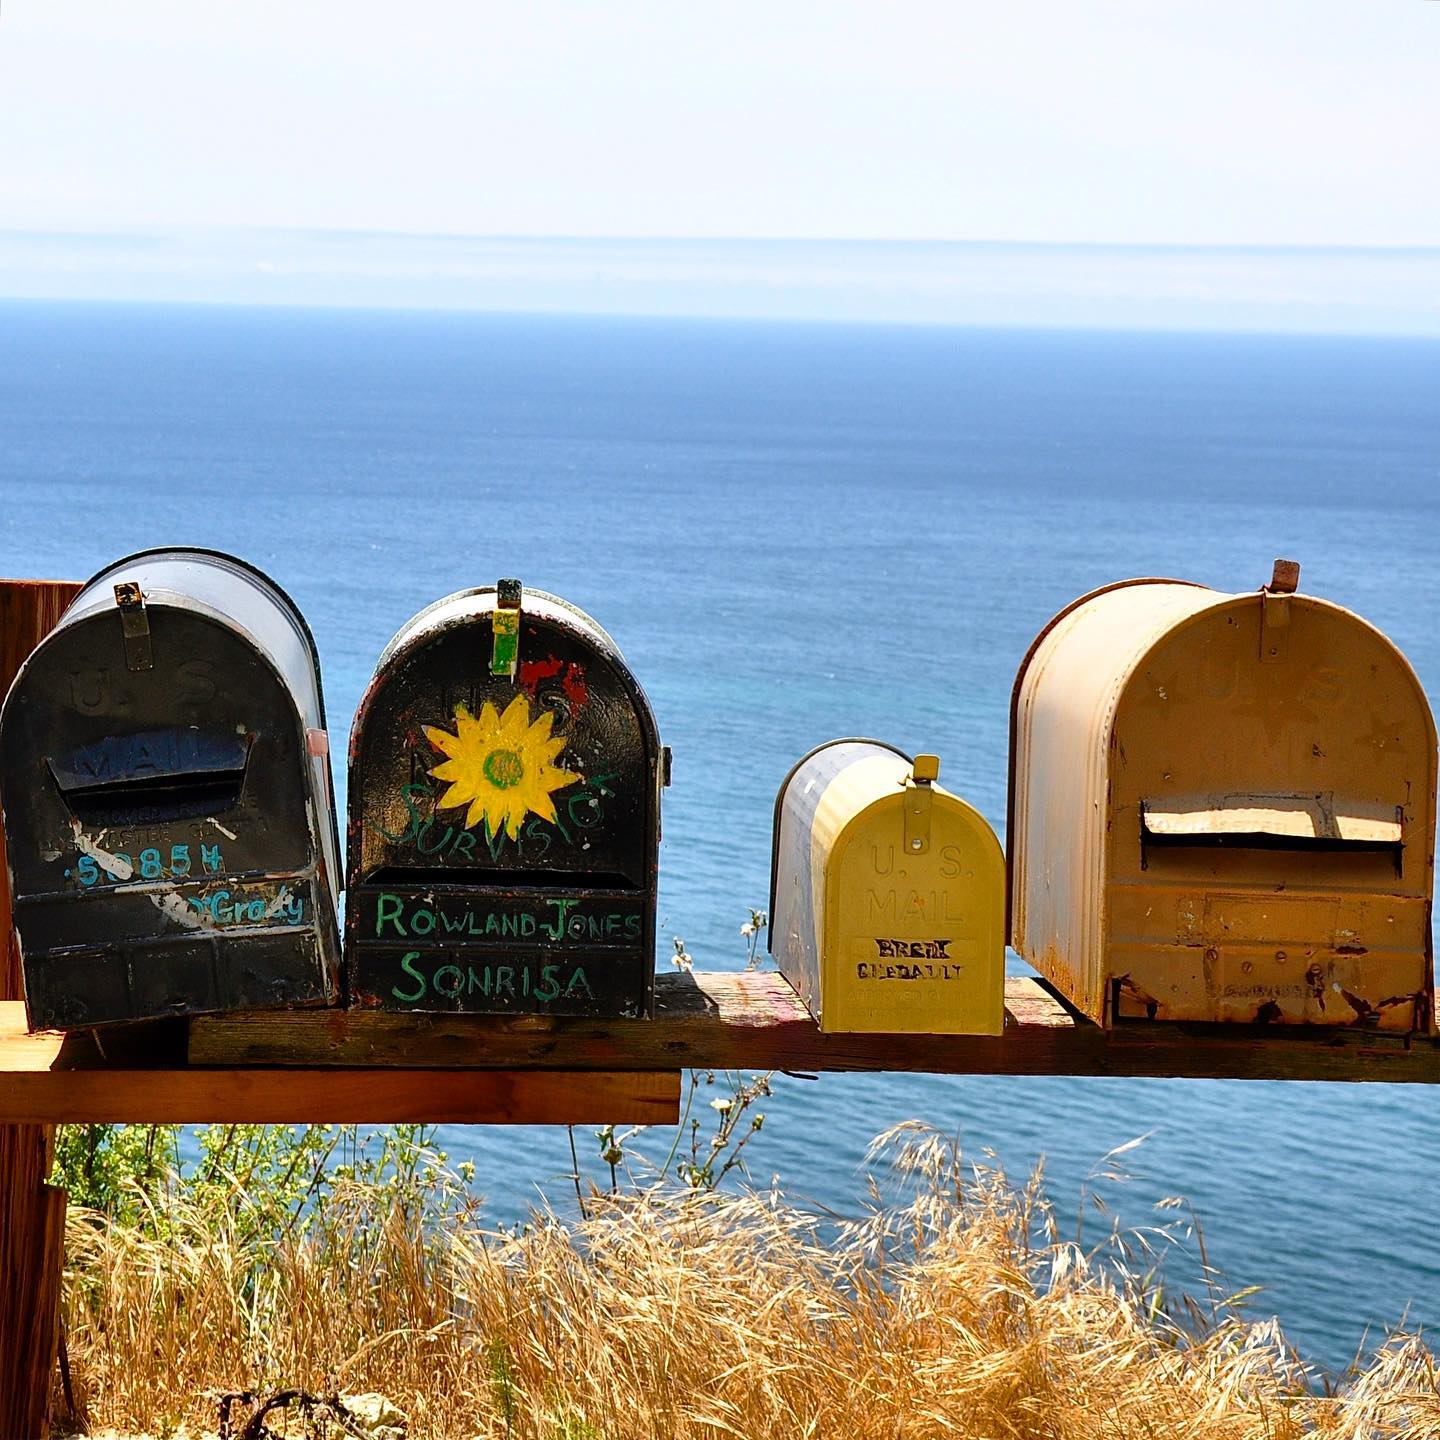 Big Sur, California  Traditional American mailboxes in Big Sur. What is typical American for you?  #usatravel #usatravels #traveling #america #bigsur #mailbox #travelphotography #travelphoto #travelpic #onlyinamerica #exploretheusa #exploremore #fromwhereistand #california #californiadreaming #travelbug #reiselust #reiseliebe #amerika #californiatrip #pacifichighway #usavacation #ontheroad #explorecalifornia #usa #usa🇺🇸 #travelgrams #travelmemories #traveltoexplore #picoftheday